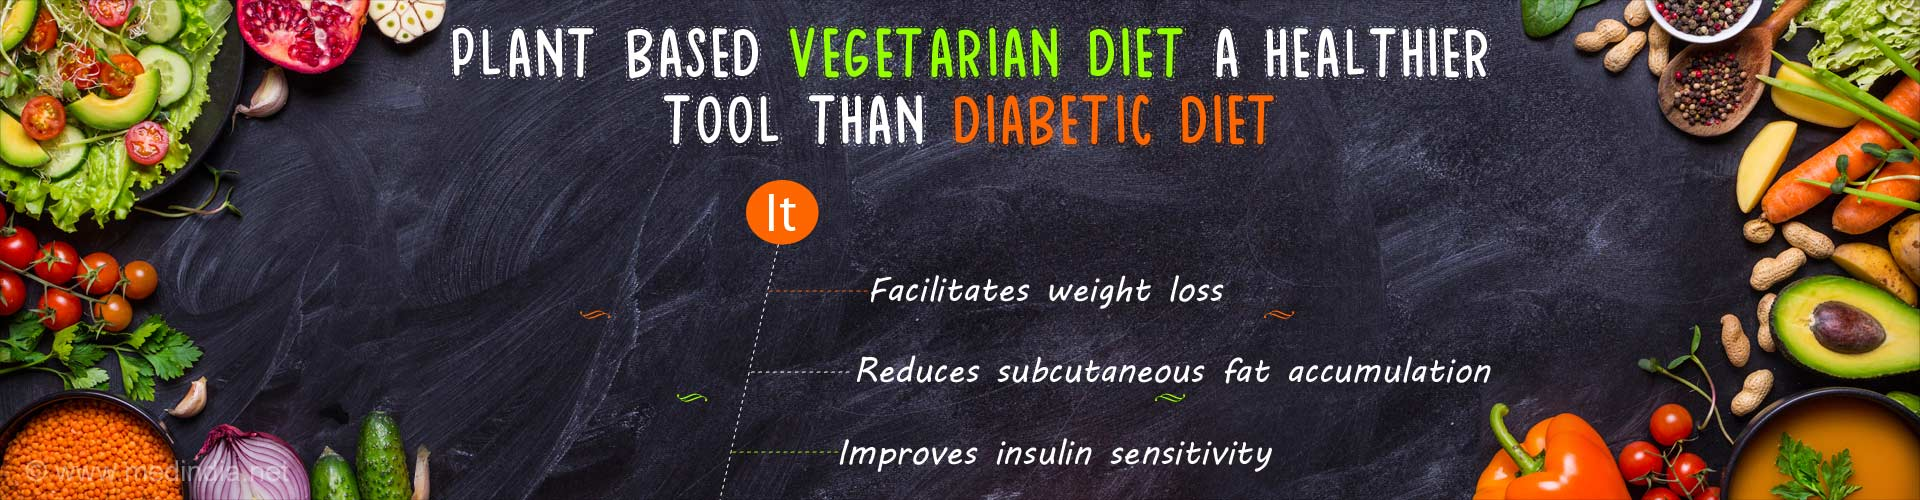 Does a Plant-Based Vegetarian Diet Reverse Diabetes, Aid in Weight Loss?